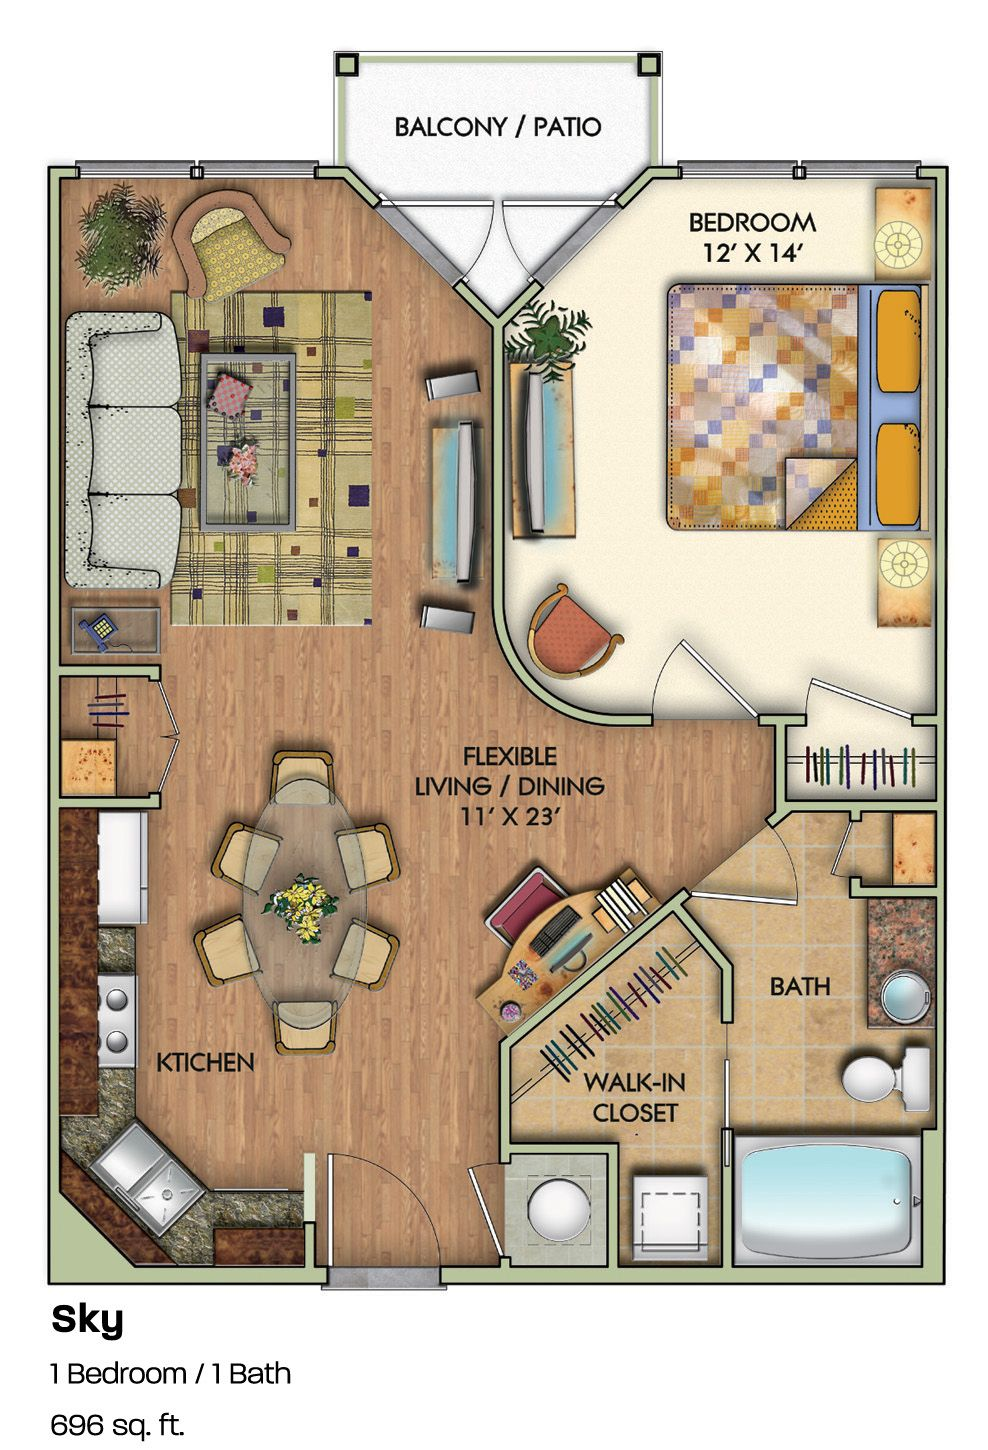 Floorplans sky lofts atlanta planner house for Atlanta house plans